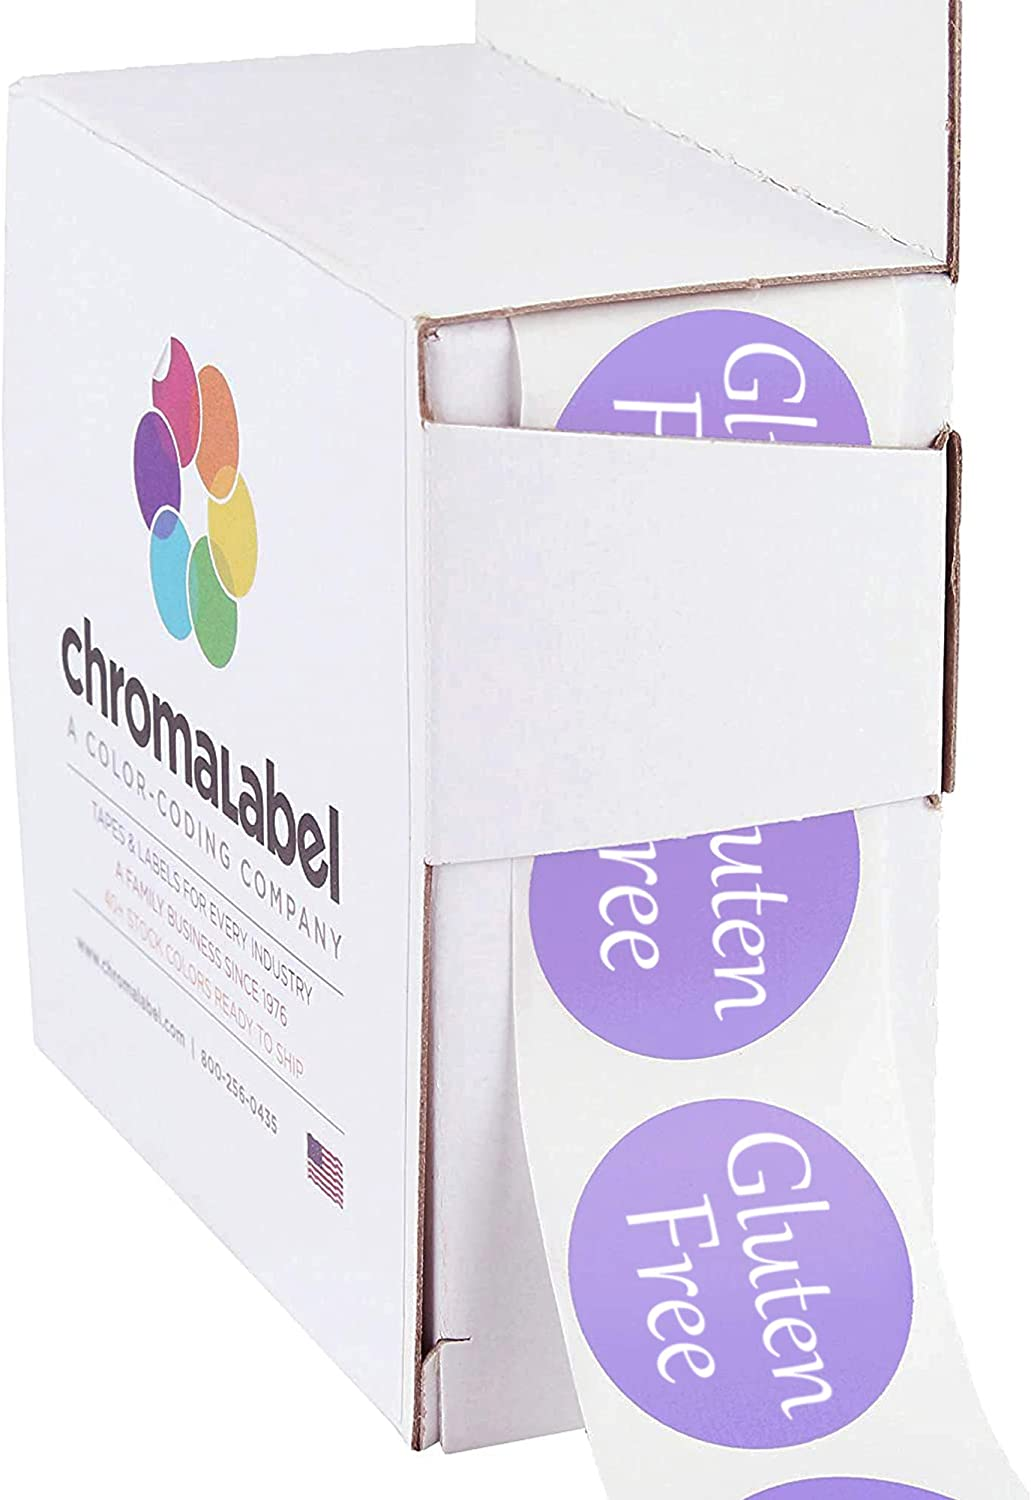 ChromaLabel 1 Inch Round Permanent Food Labels, 500 Stickers per Dispenser Box, Lavender, Gluten Free